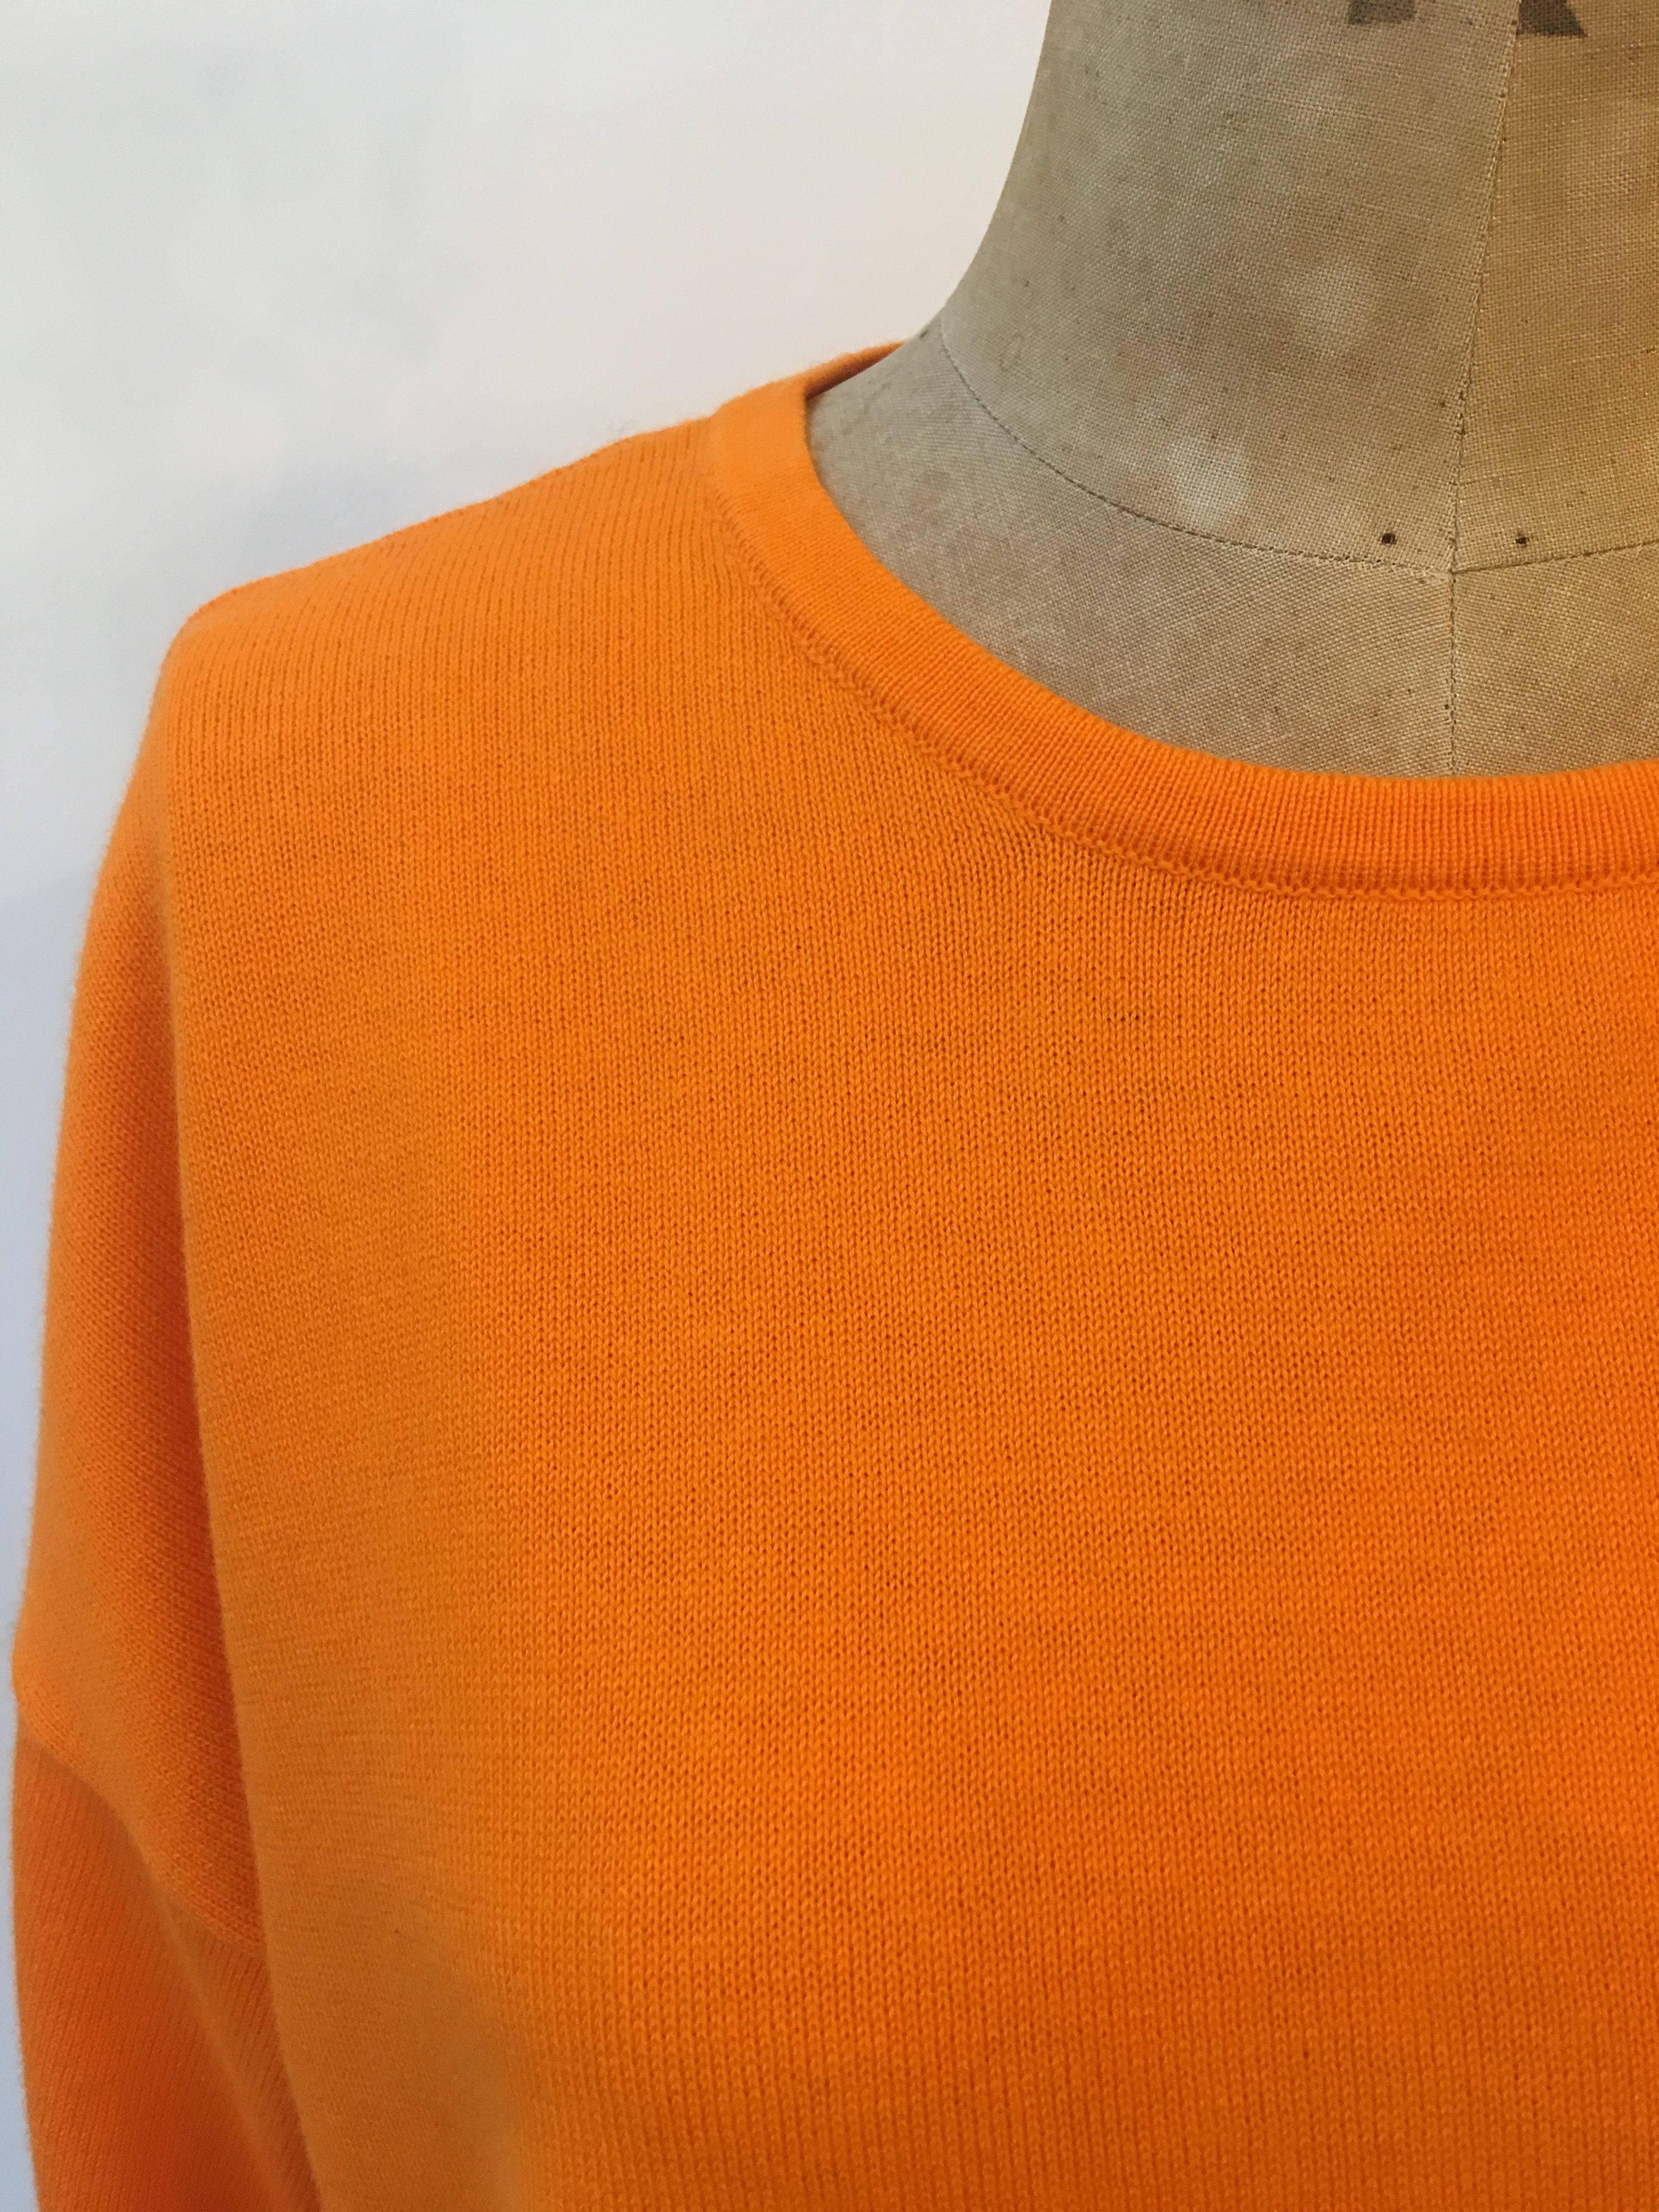 Cash CA Cotton / Cashmere Turn Back Cuff Wide Body Crew Neck Jumper in Tangerine